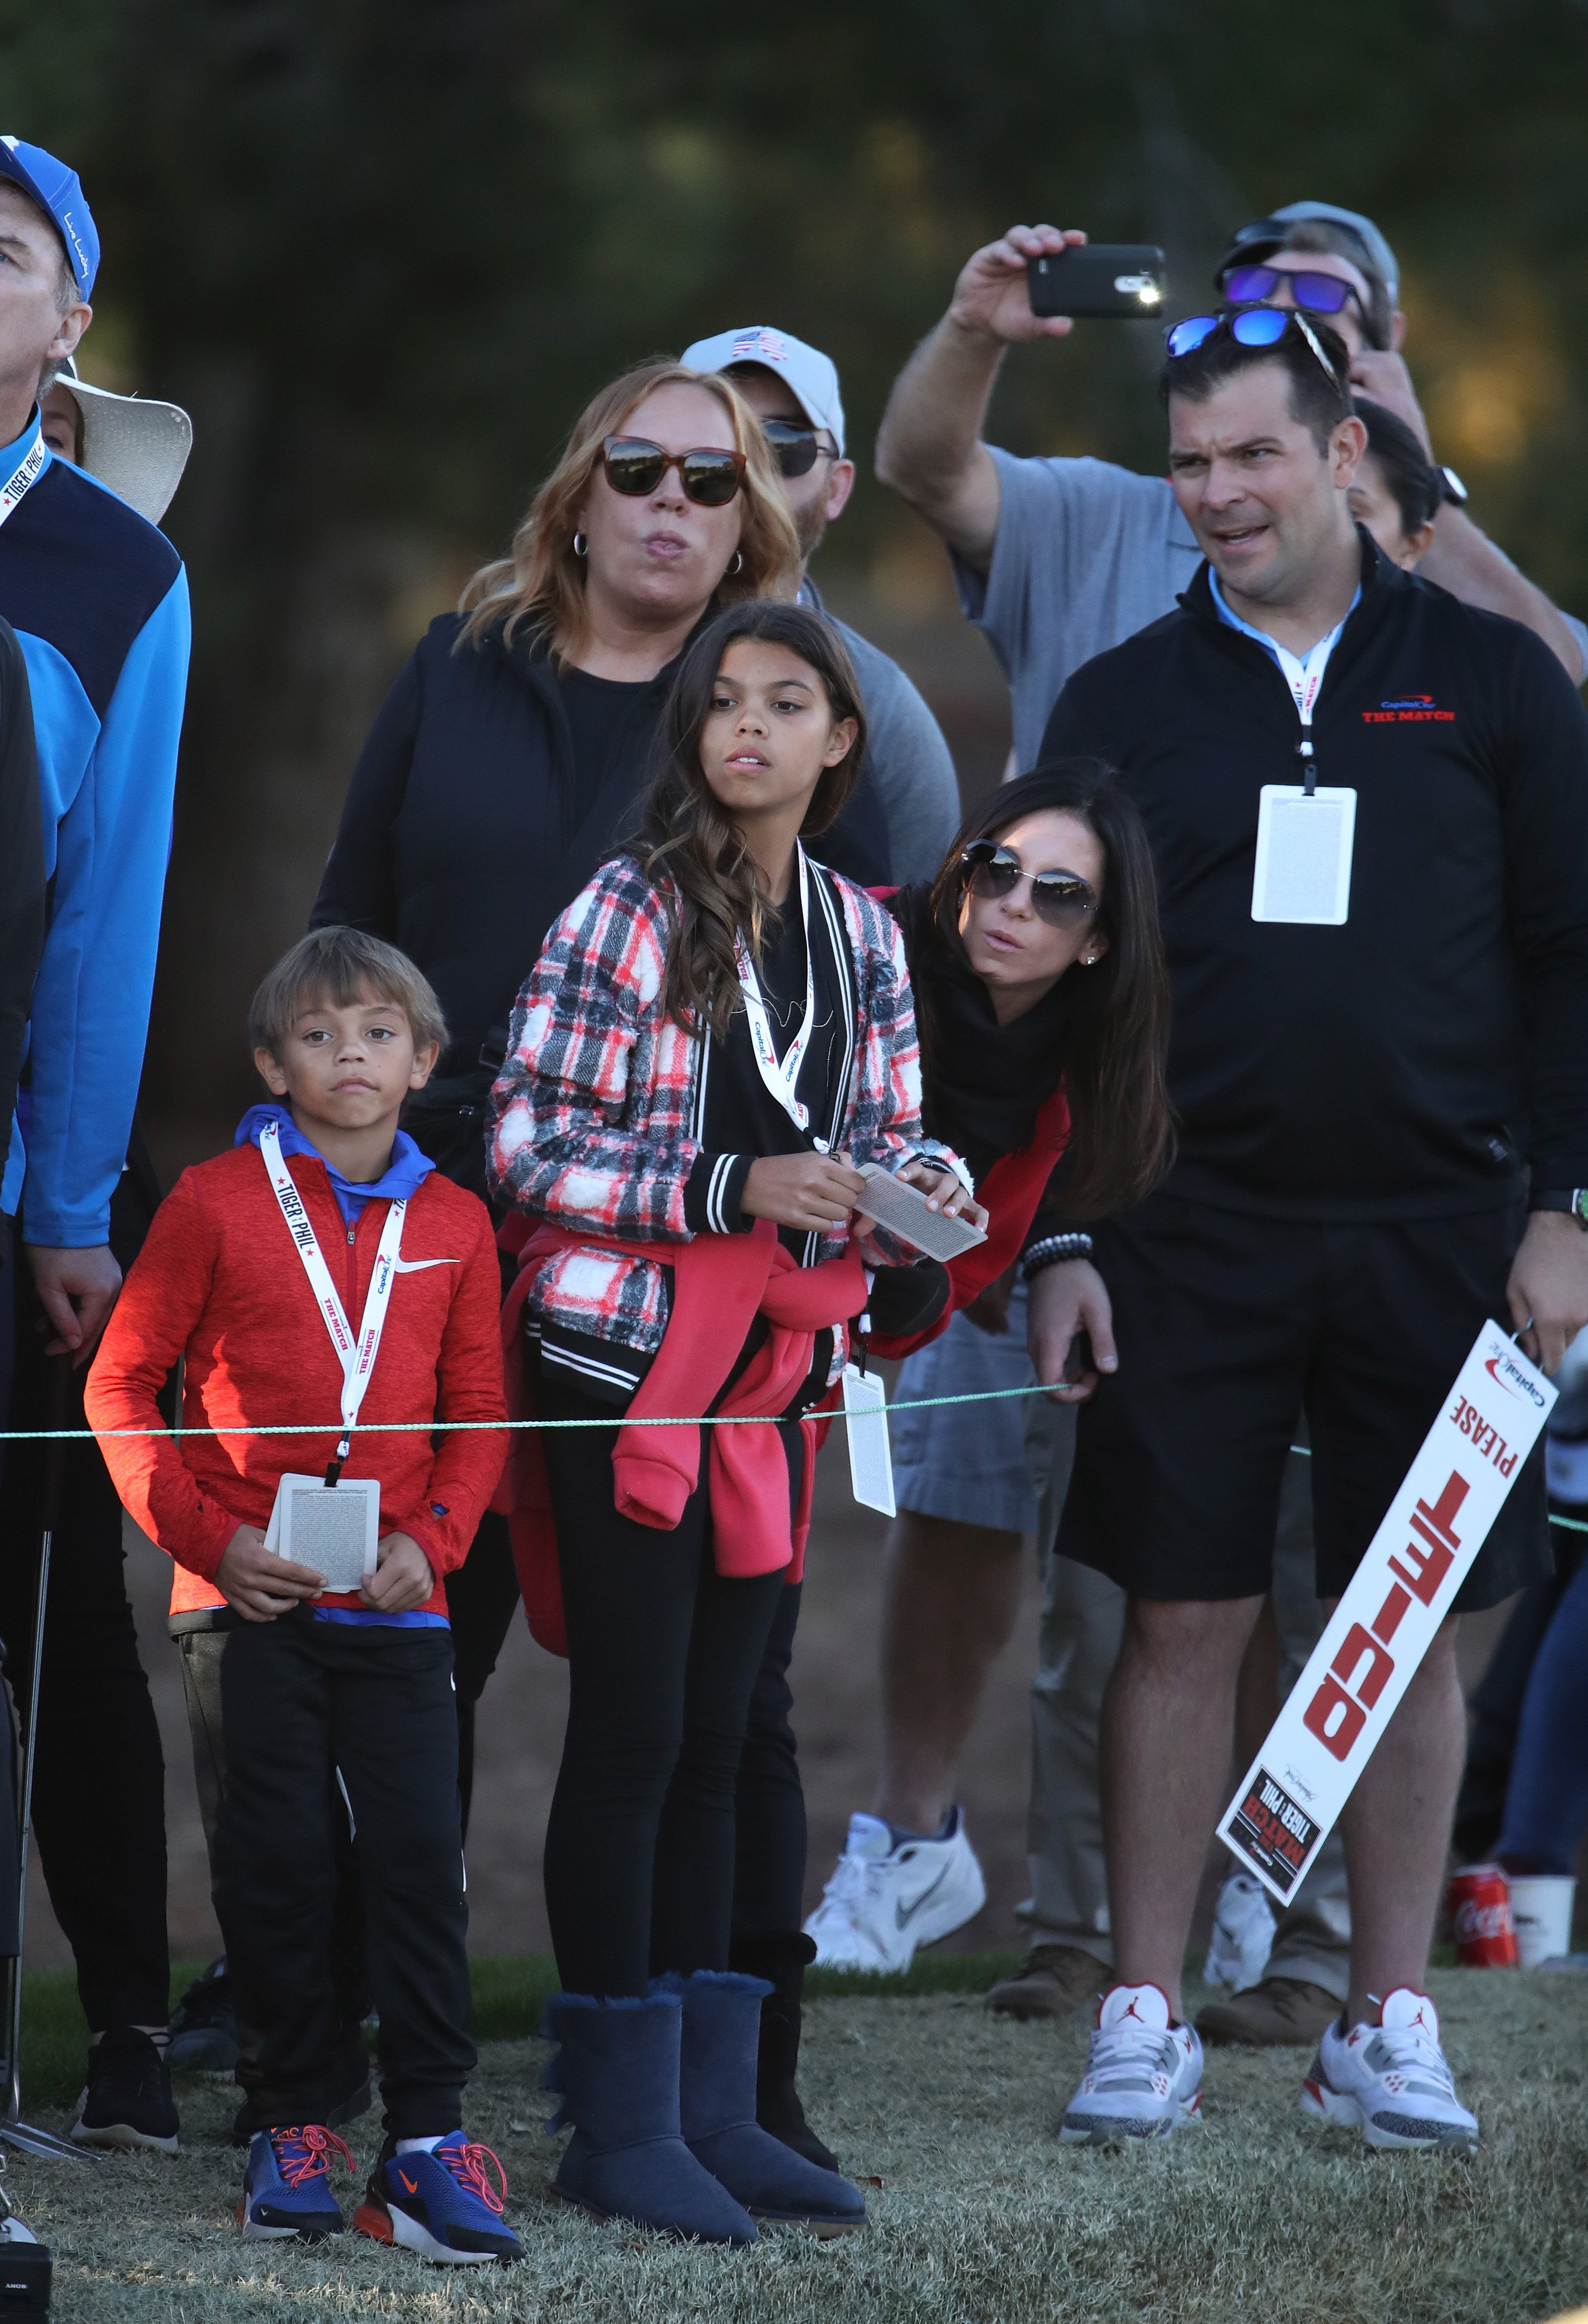 Erica Herman, Tiger Woods, and his children Sam and Charlie look on during The Match: Tiger vs Phil at Shadow Creek Golf Course on November 23, 2018 in Las Vegas, Nevada | Photo: Getty Images